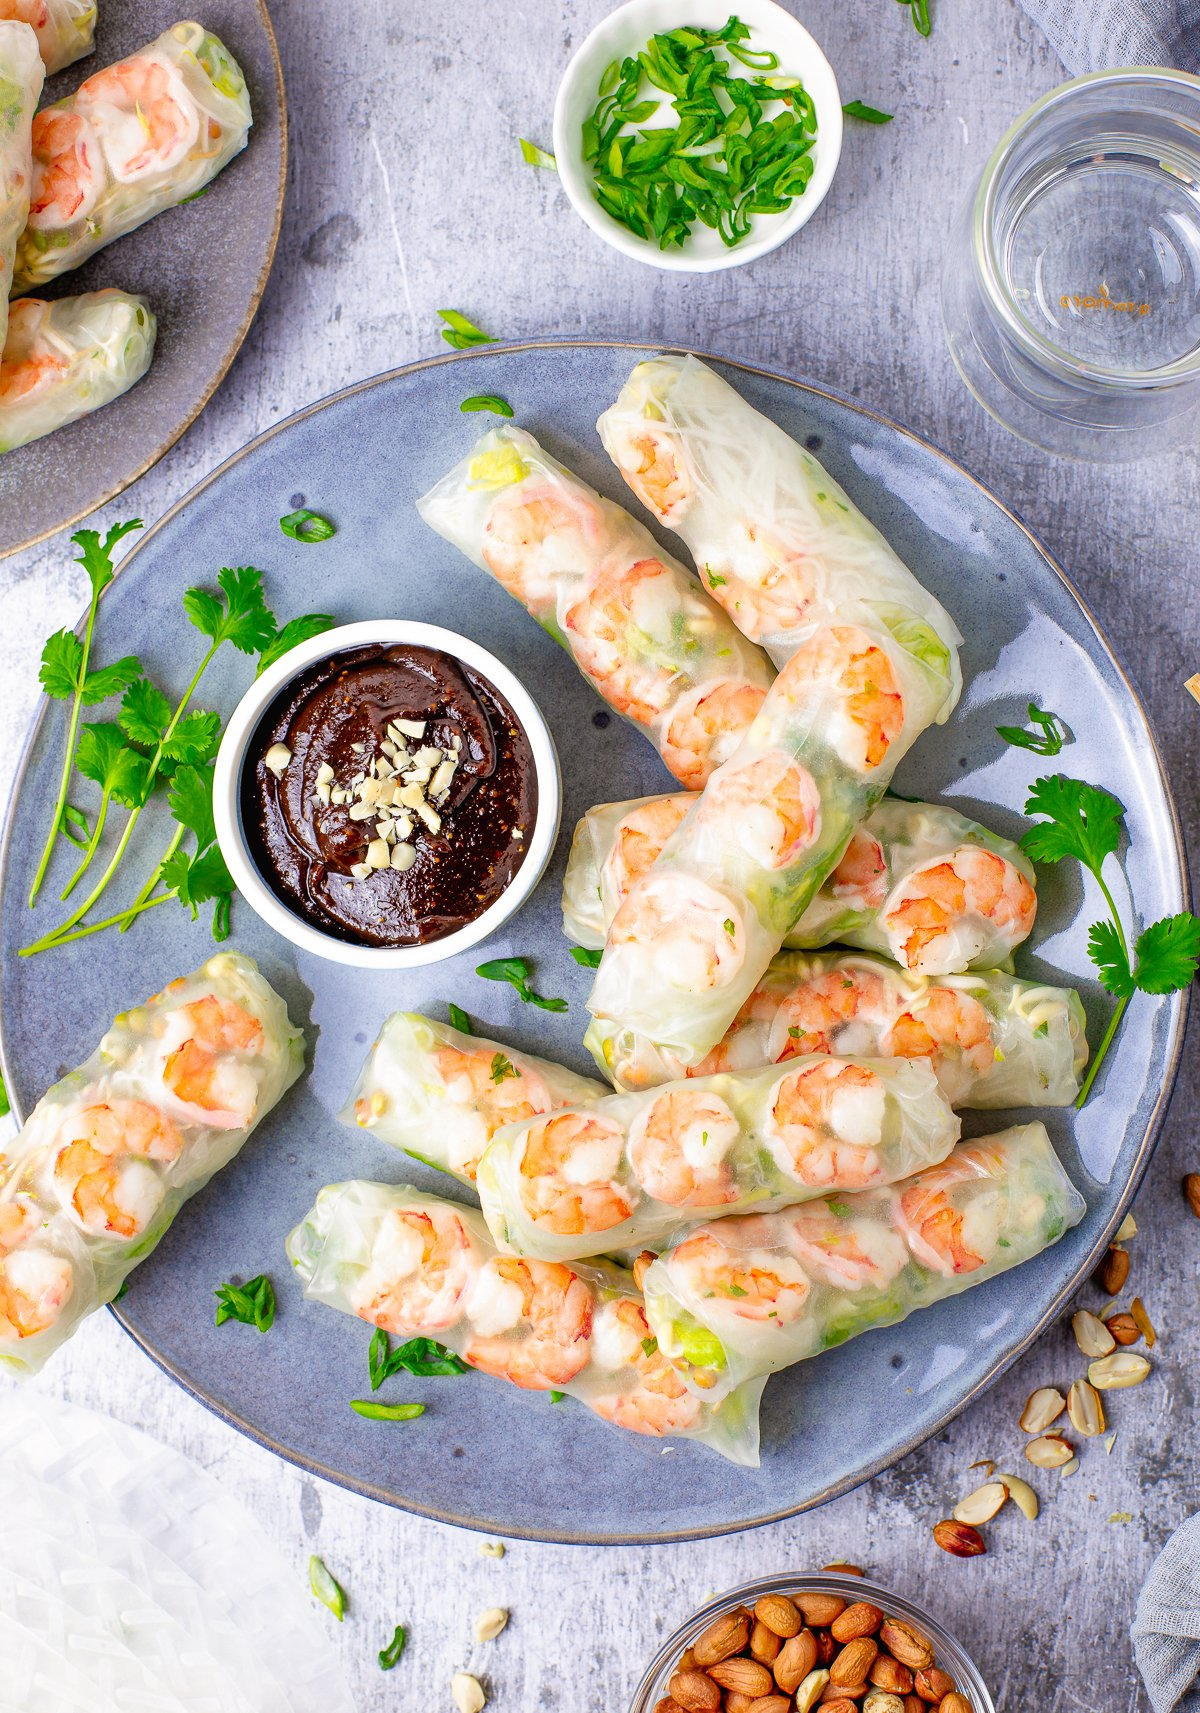 Overhead photo of Salad Rolls on plate with dipping sauce